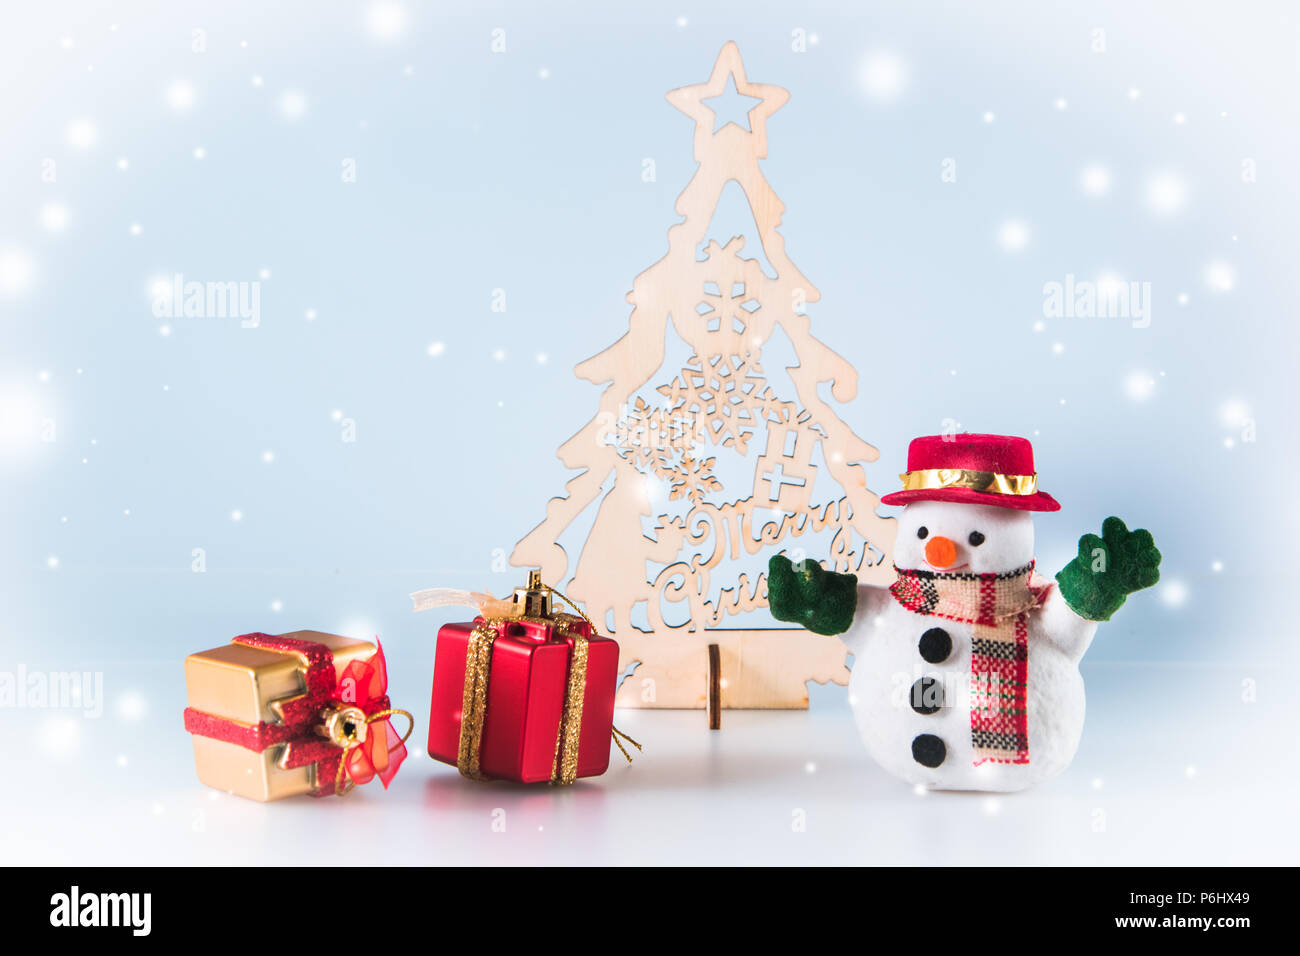 Snowman And Gift Box Stand Near Christmas Tree On White Background